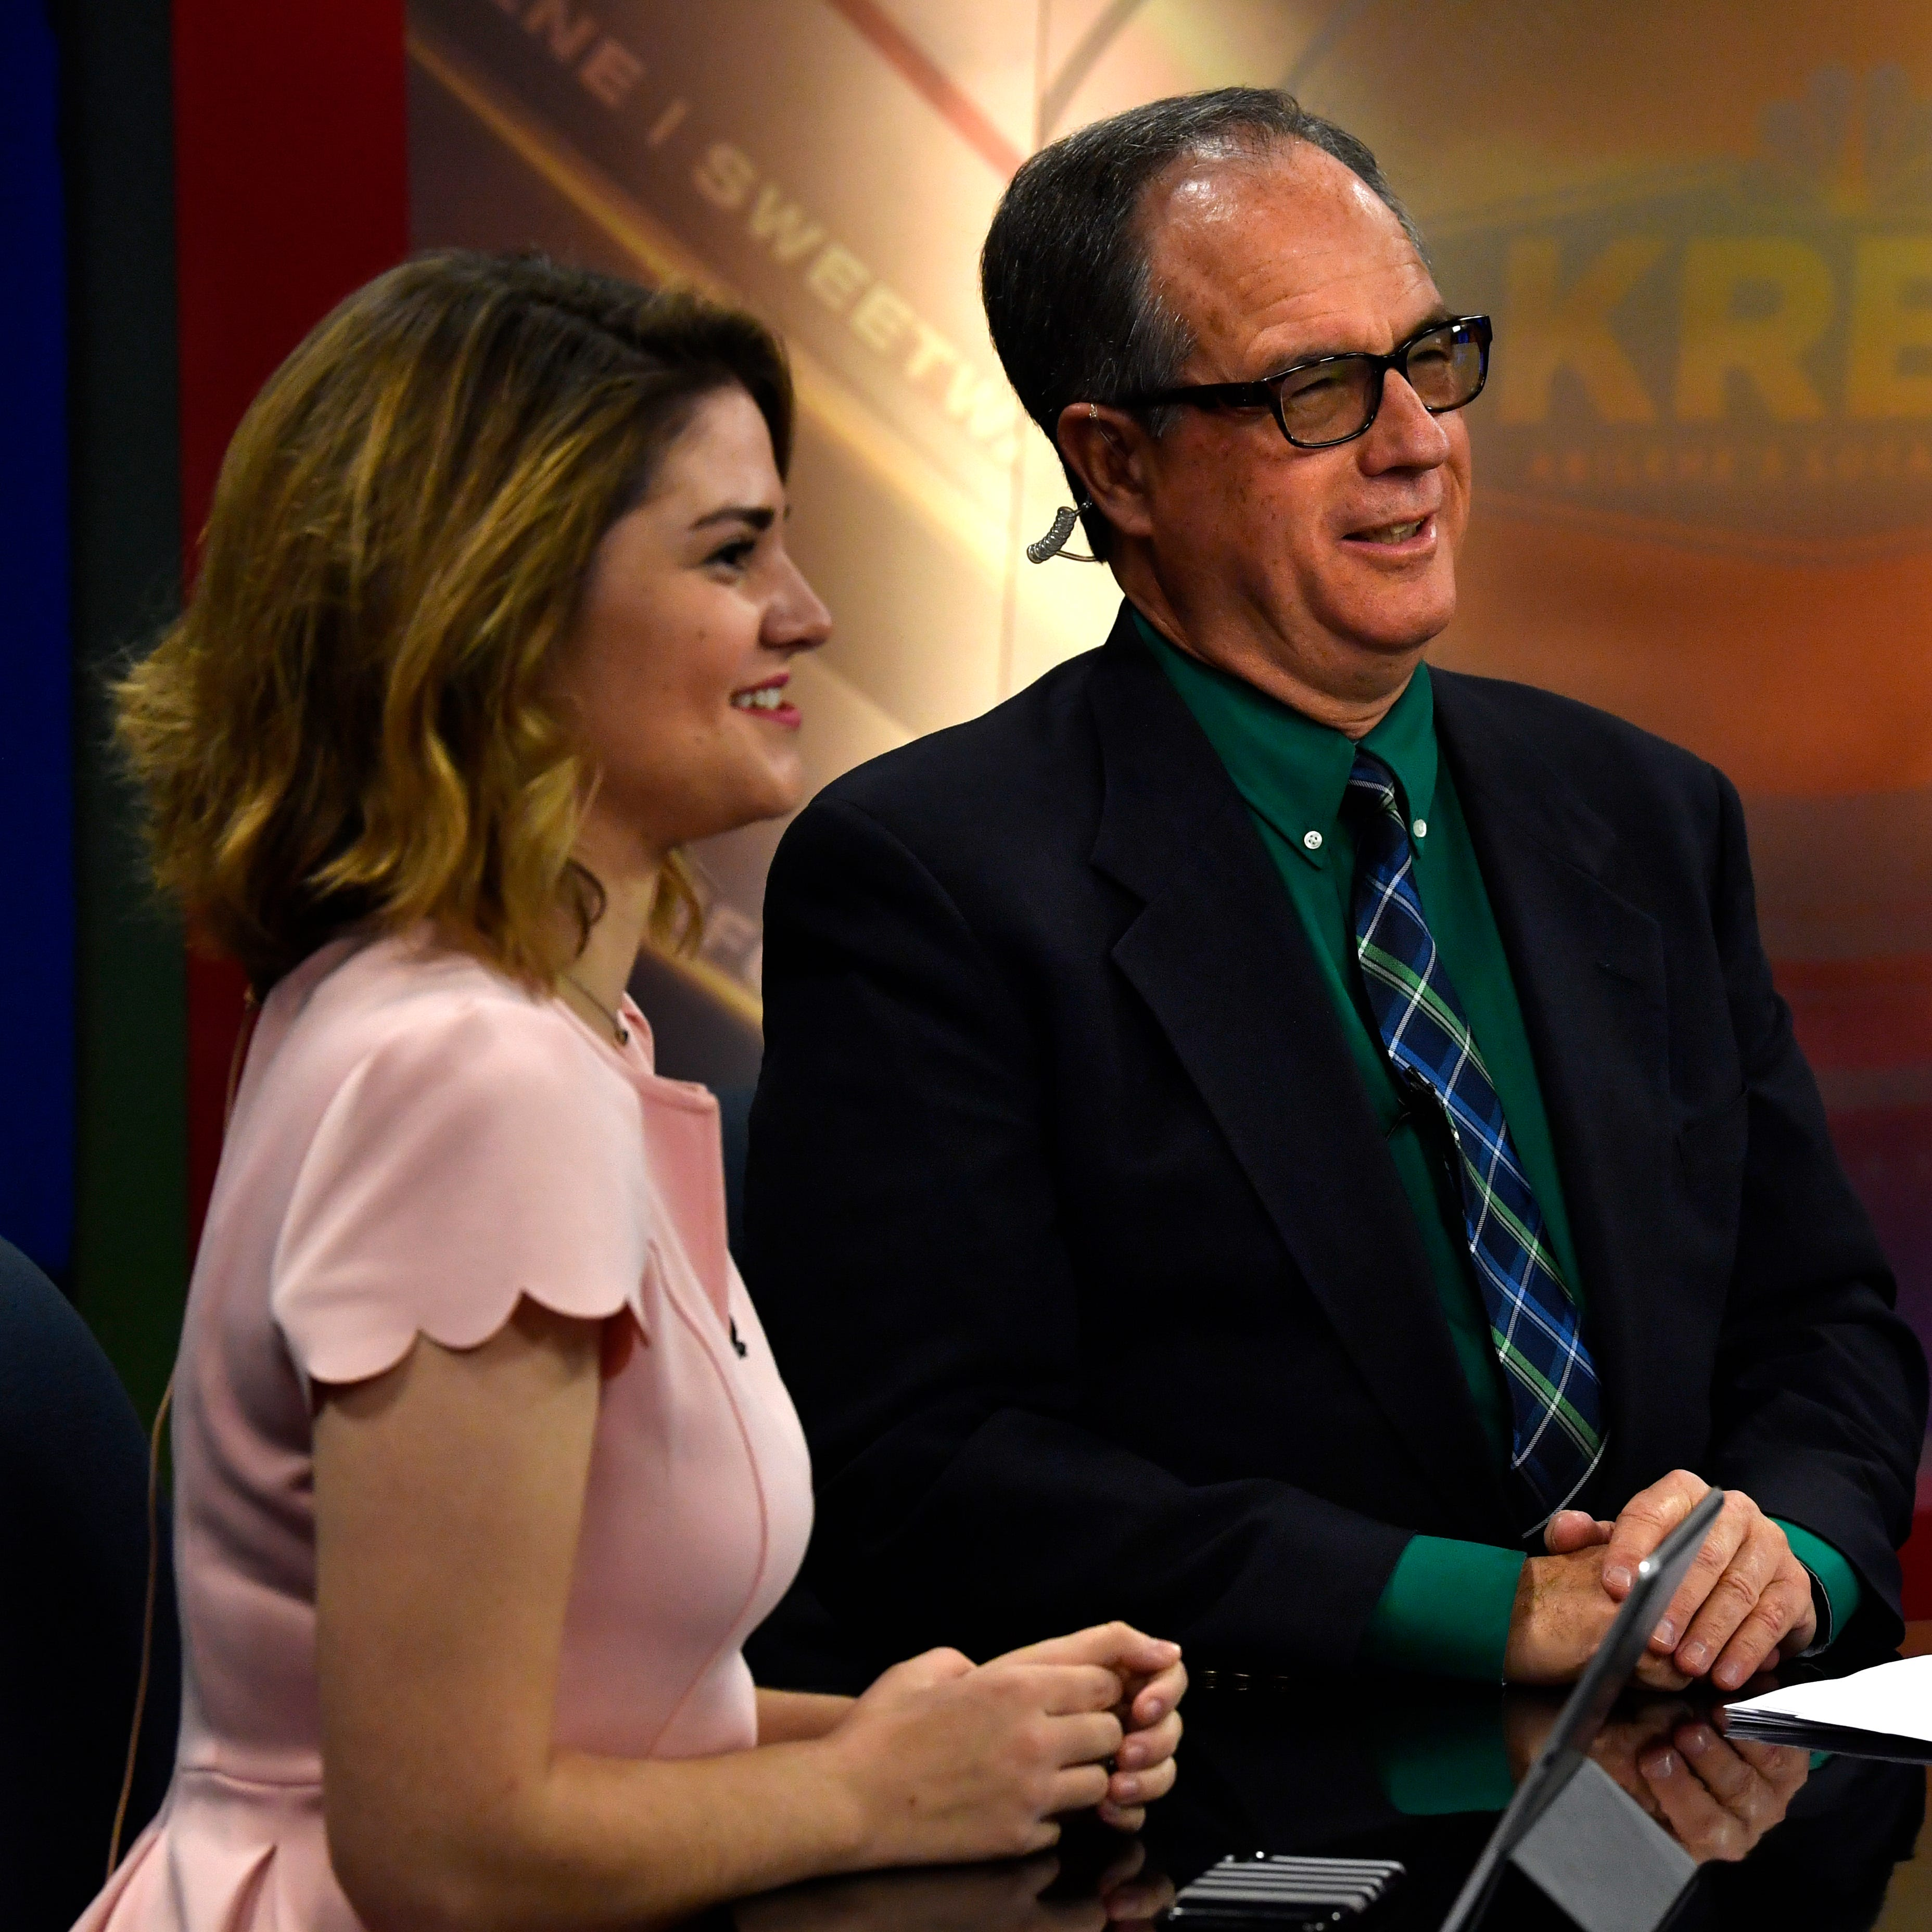 What's cookin' on TV? Bacon hopes to sizzle as KRBC anchor